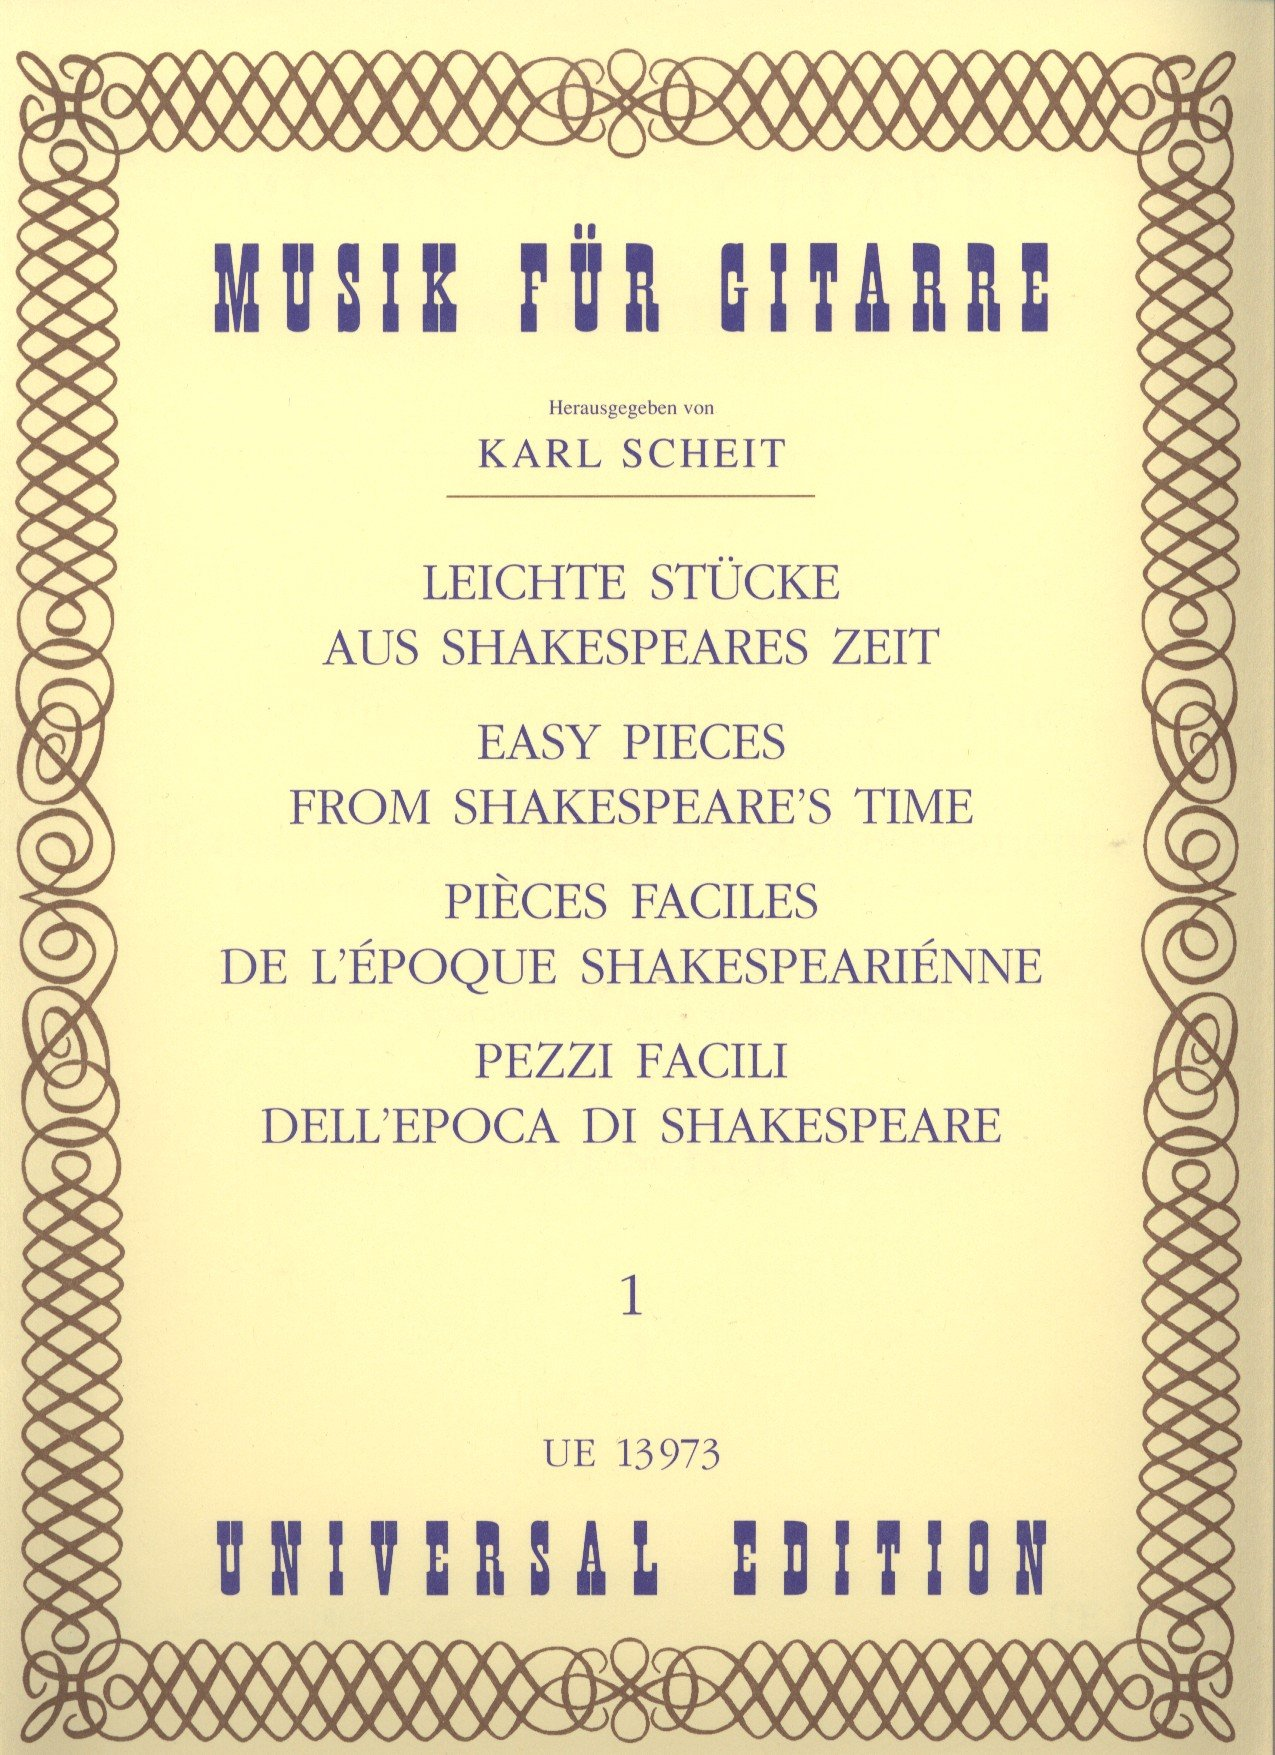 Easy Pieces from Shakespeare?s Time Volume 1, Edition for Guitar, edited by Karl Scheit